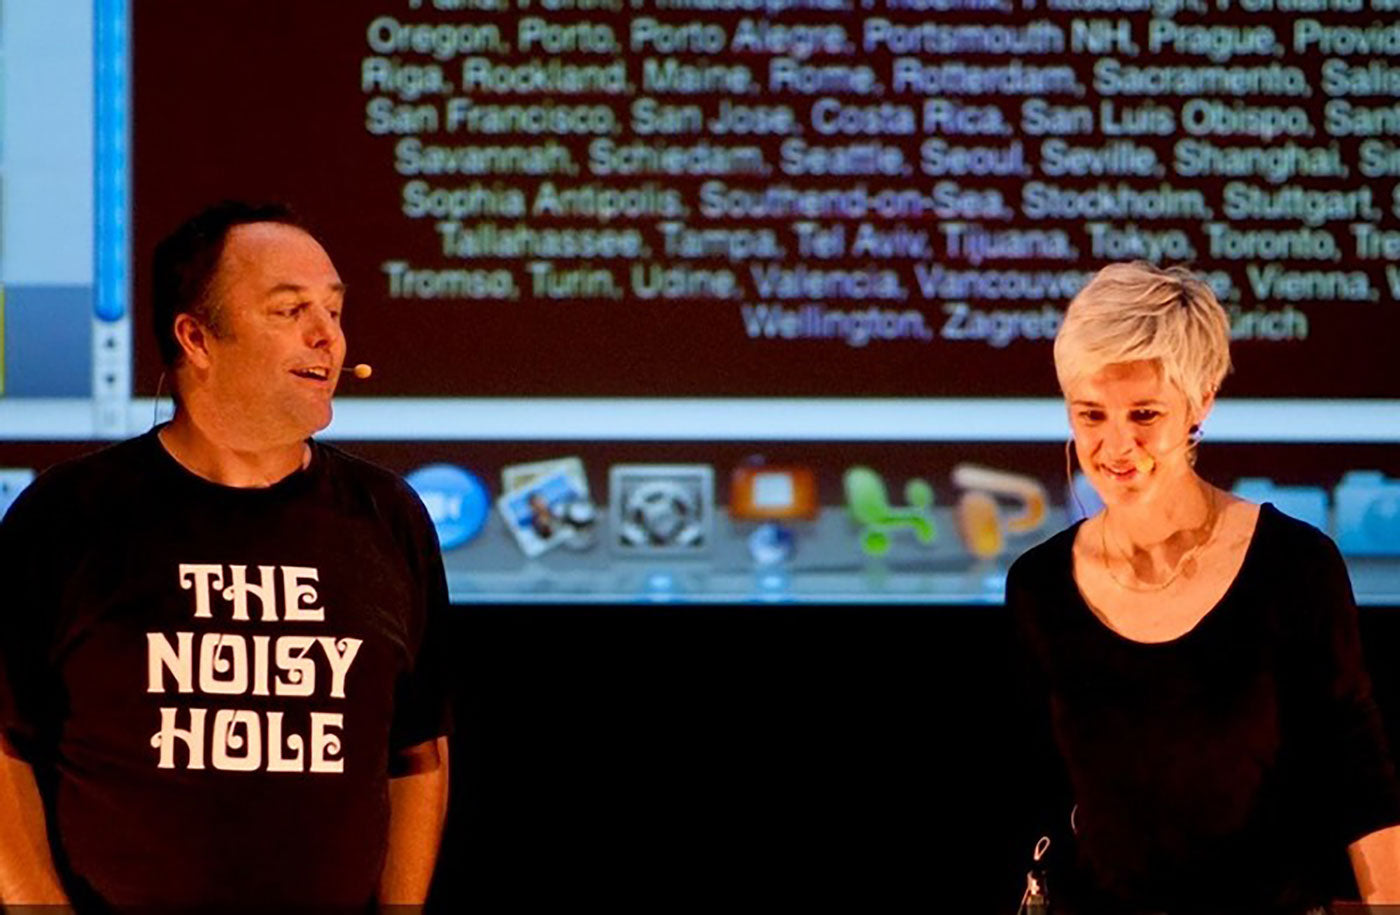 Astrid Klein with Mark Dytham at TEDx Tokyo